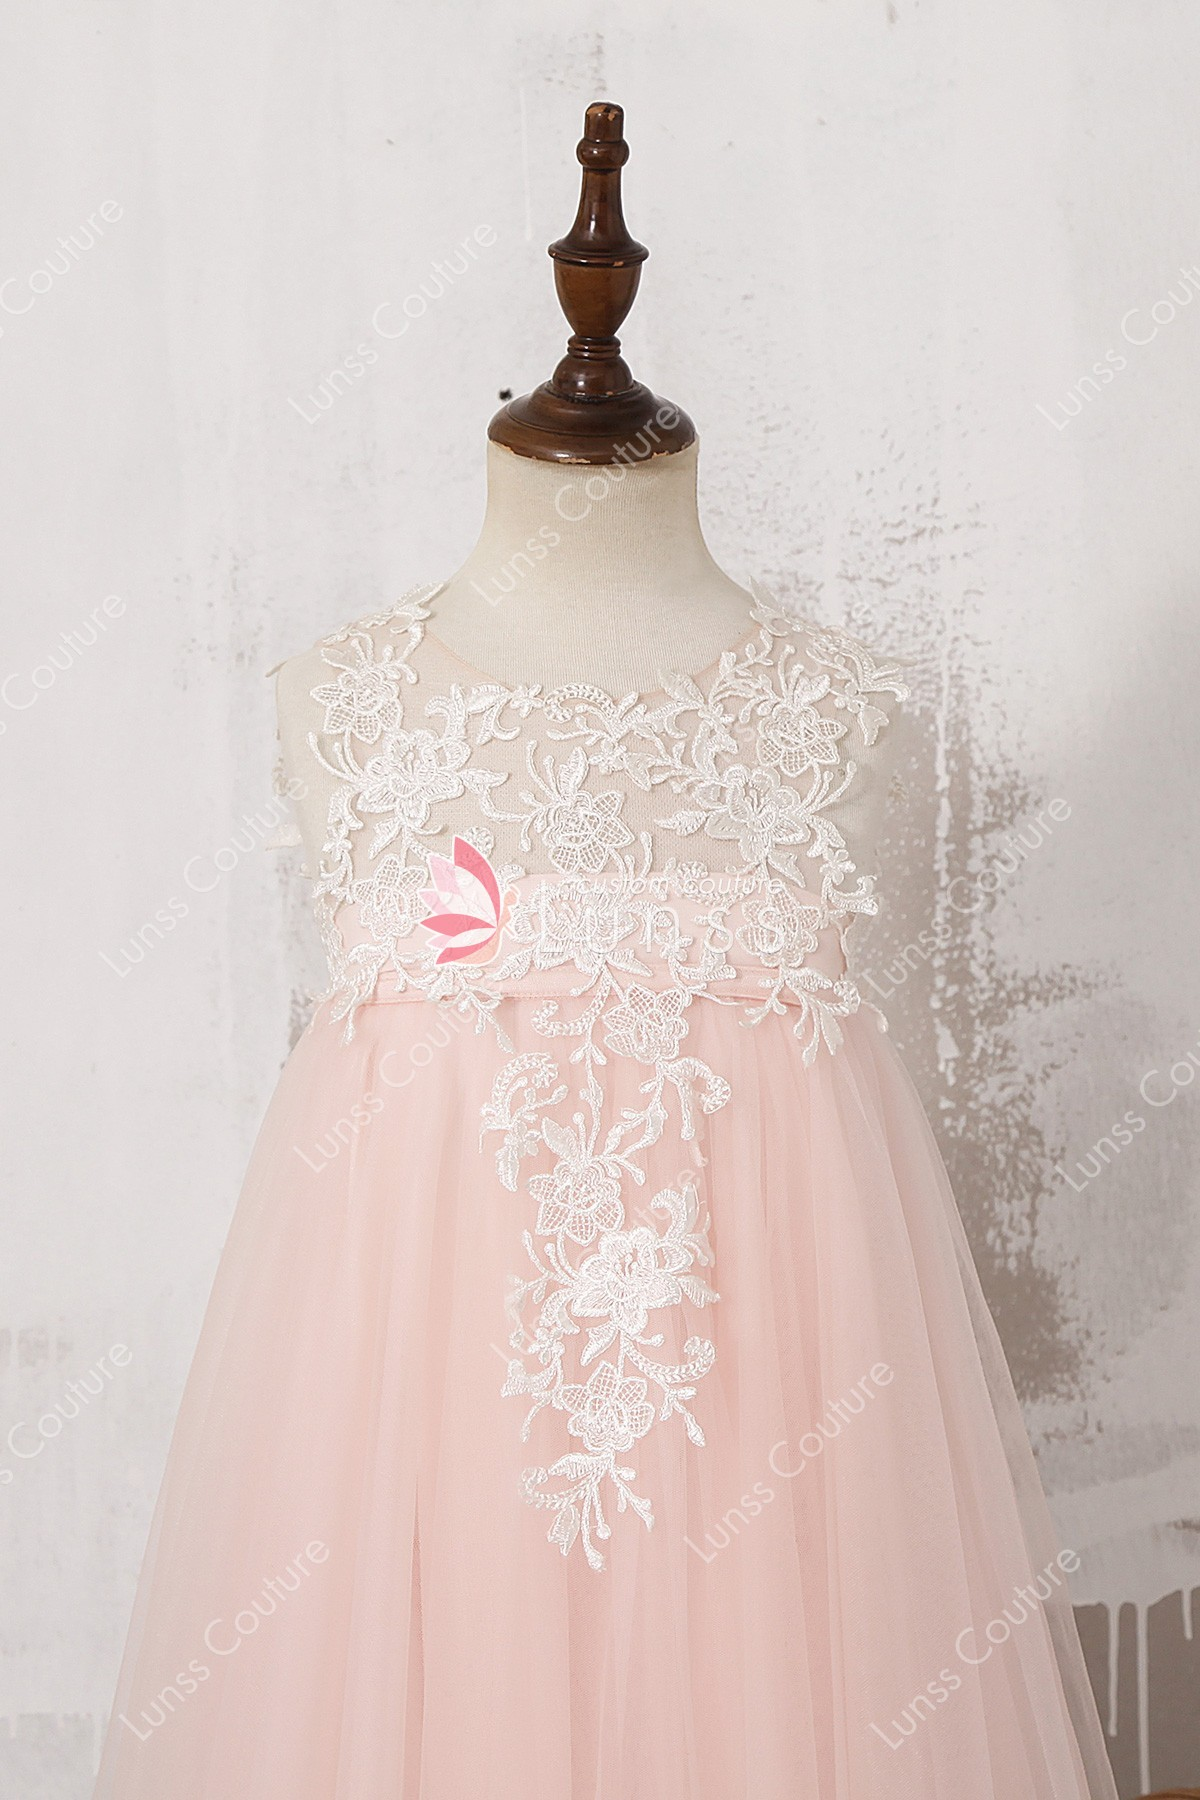 Designer Illusion Ivory Lace Blush Pink Tulle Ankle Length Flower